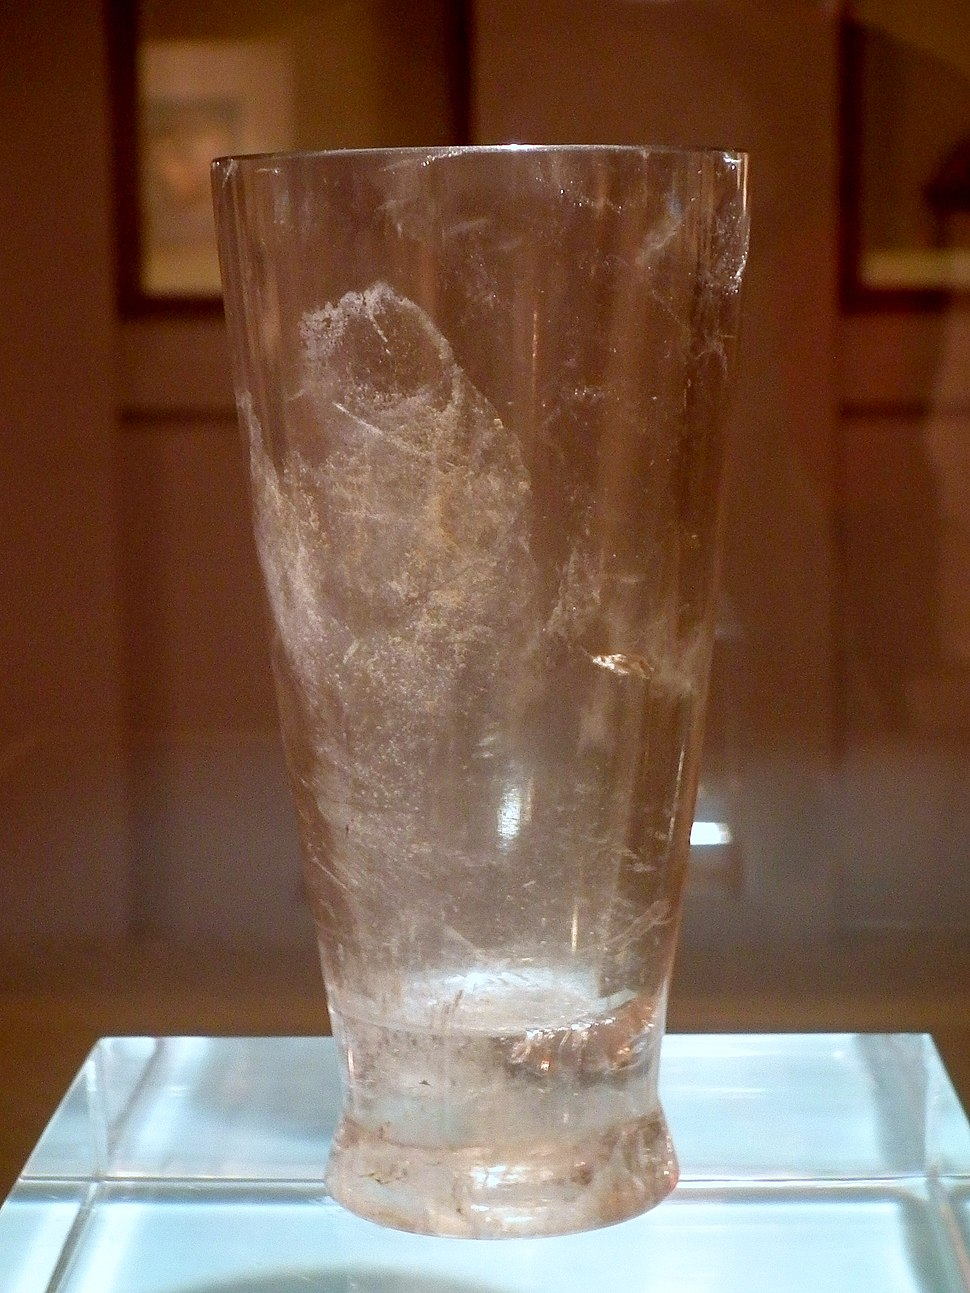 Crystal Cup(Warring States Period) in Hangzhou Museum